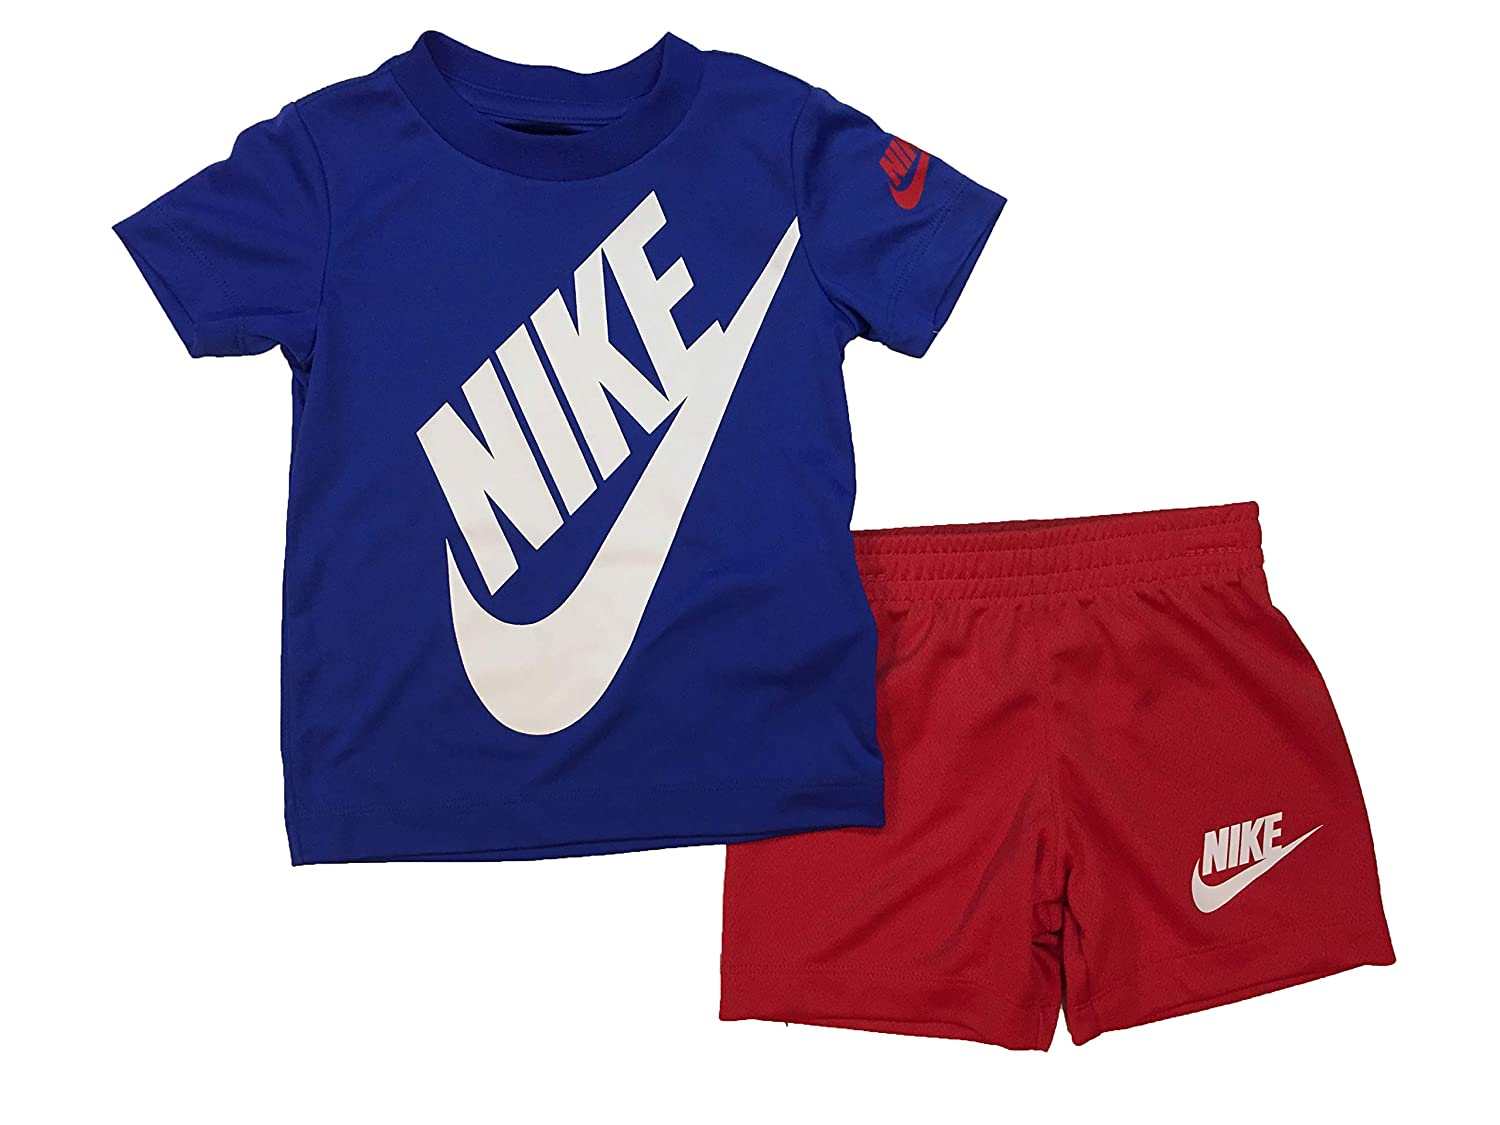 aa7cddf5d9 Amazon.com: Nike Boy`s Dri-Fit T-Shirt & Shorts 2 Piece Set: Sports &  Outdoors